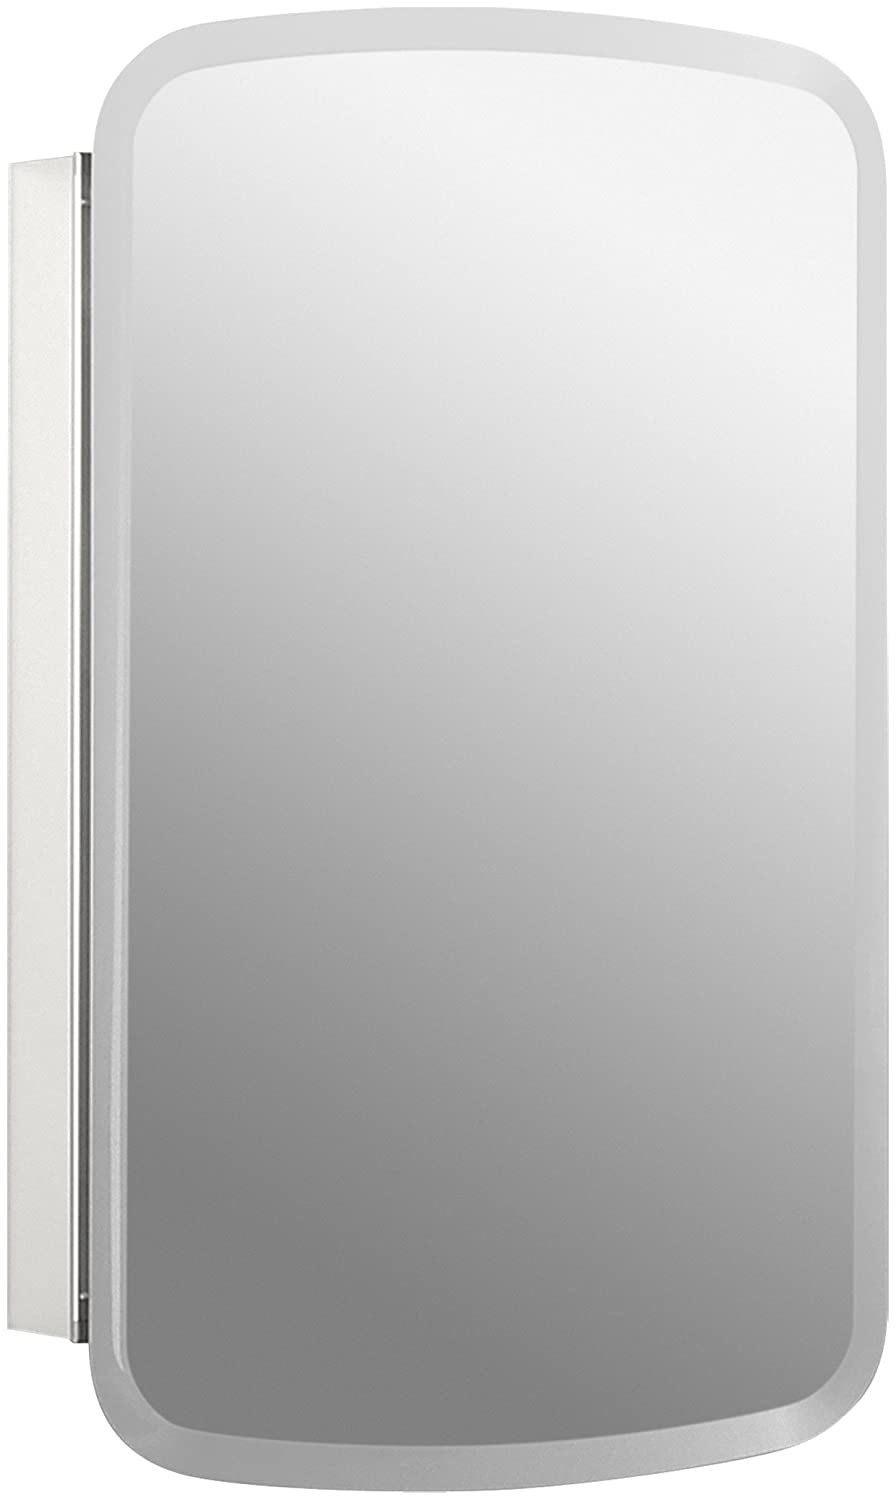 Amazon kohler k cb clc2031ban single door 20 inch by 31 inch amazon kohler k cb clc2031ban single door 20 inch by 31 inch by 5 inch aluminum cabinet home improvement eventelaan Gallery